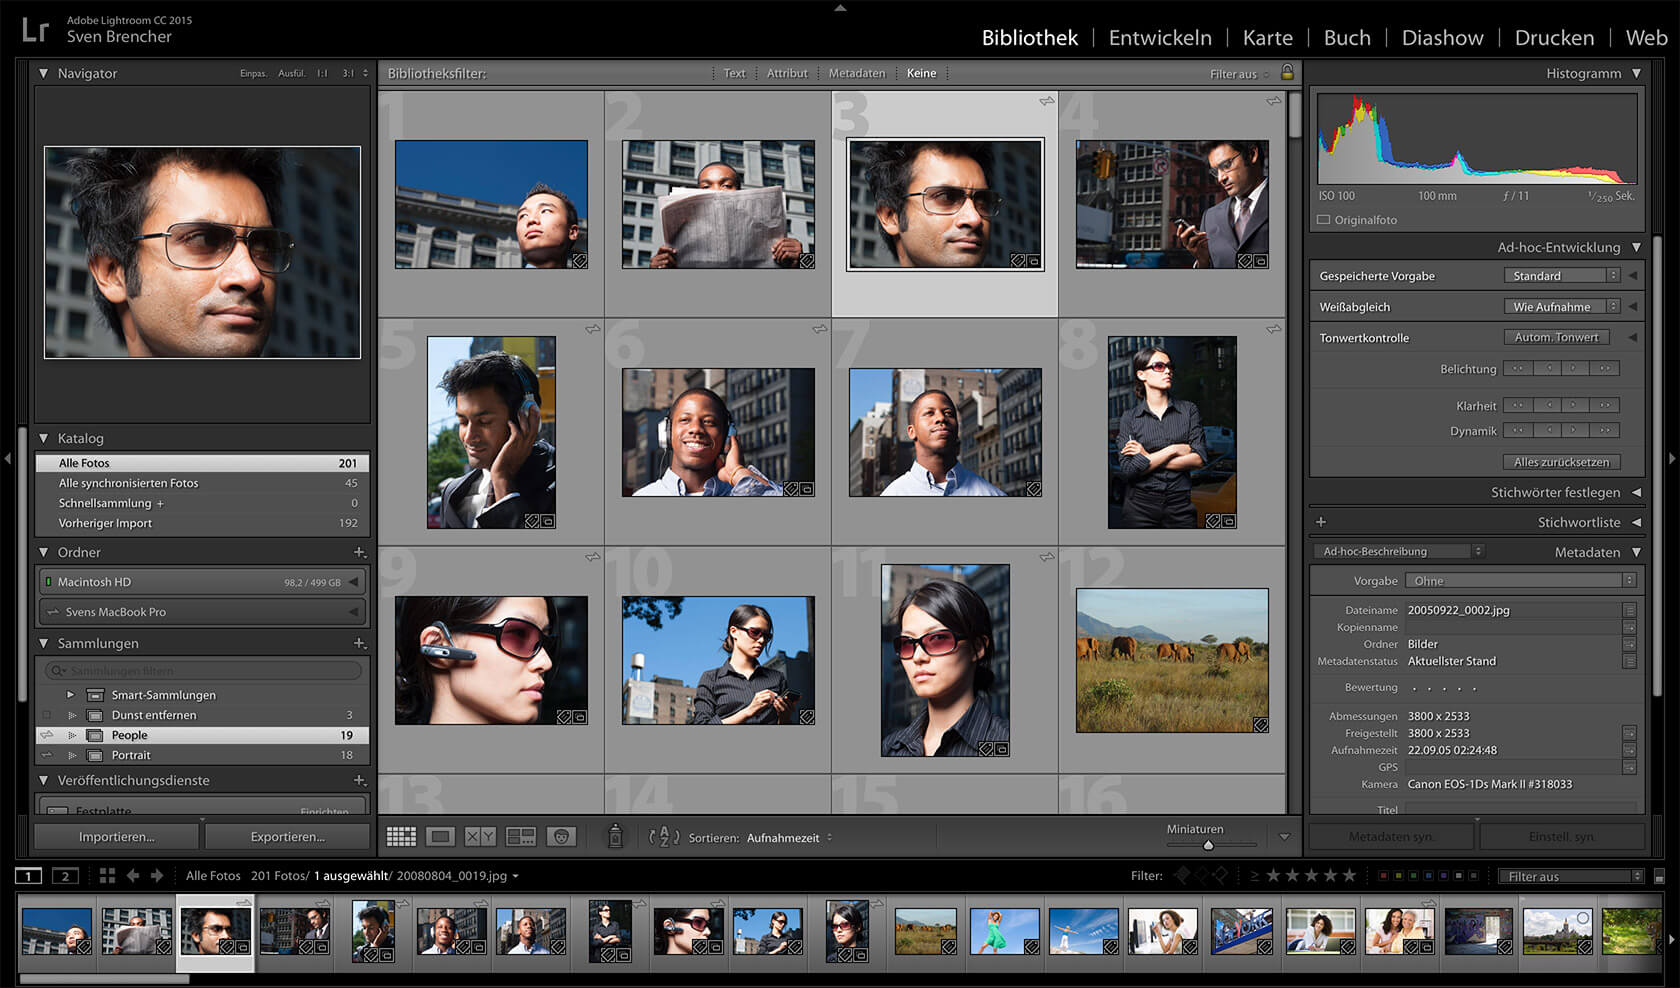 Lightroom CC 2015 im Foto Abo